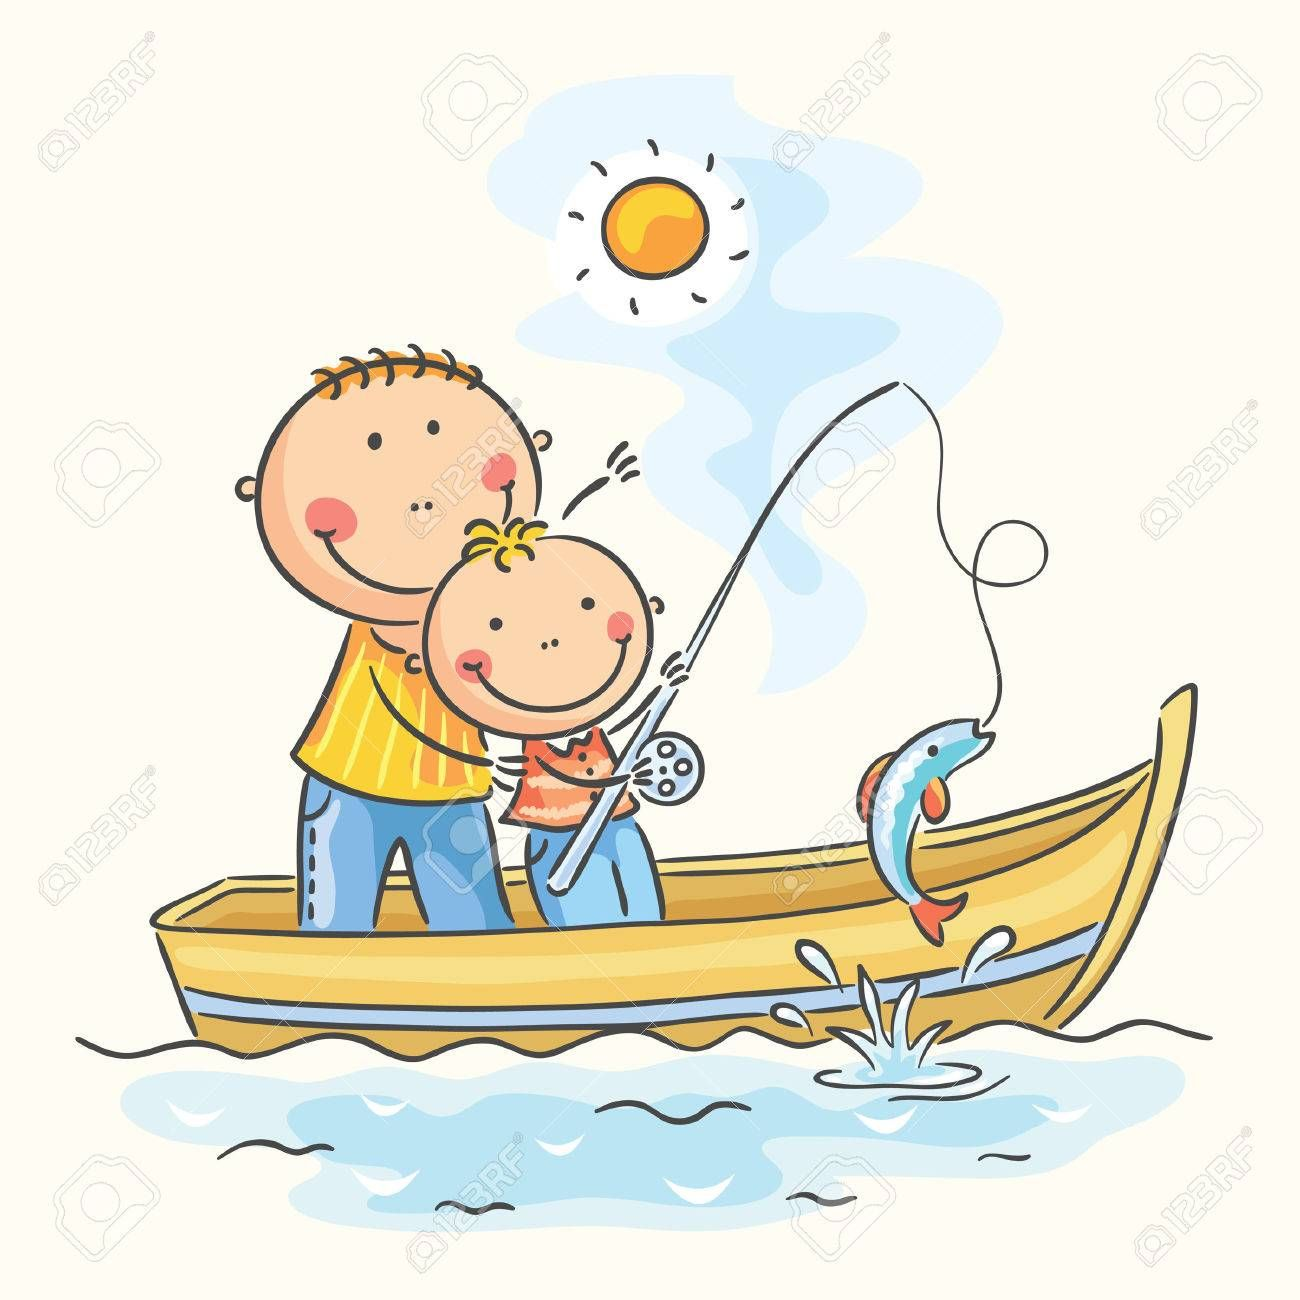 Fishing Boat Clipart Dad Clipart Free Clipart On Dumielauxepices Net Boat Cartoon Boat Drawing Stick Figure Drawing